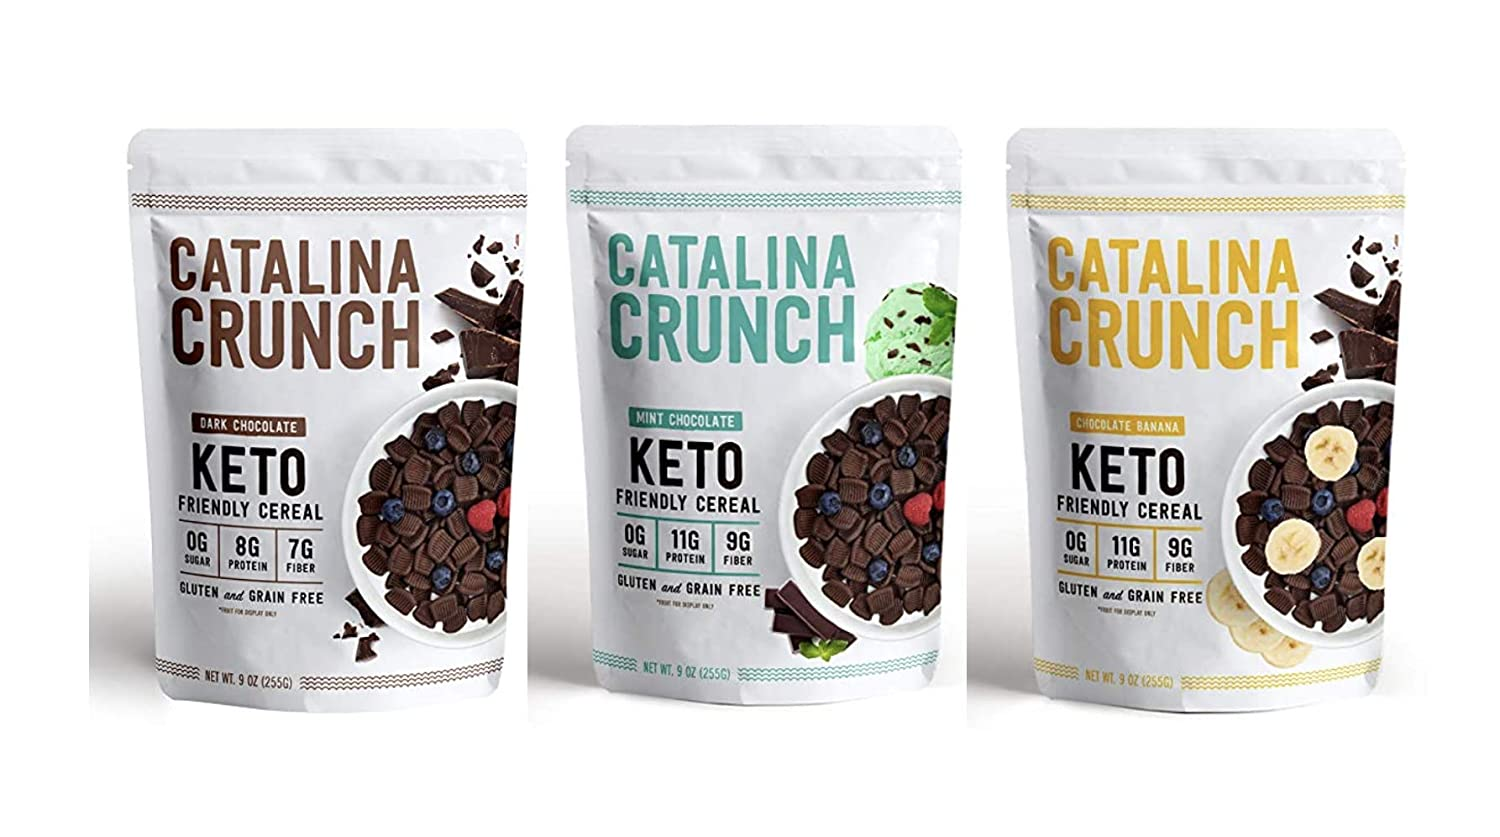 Catalina Crunch Keto Friendly Cereal, Chocolate Lovers Variety Pack, 9 Ounce (Pack of 3)